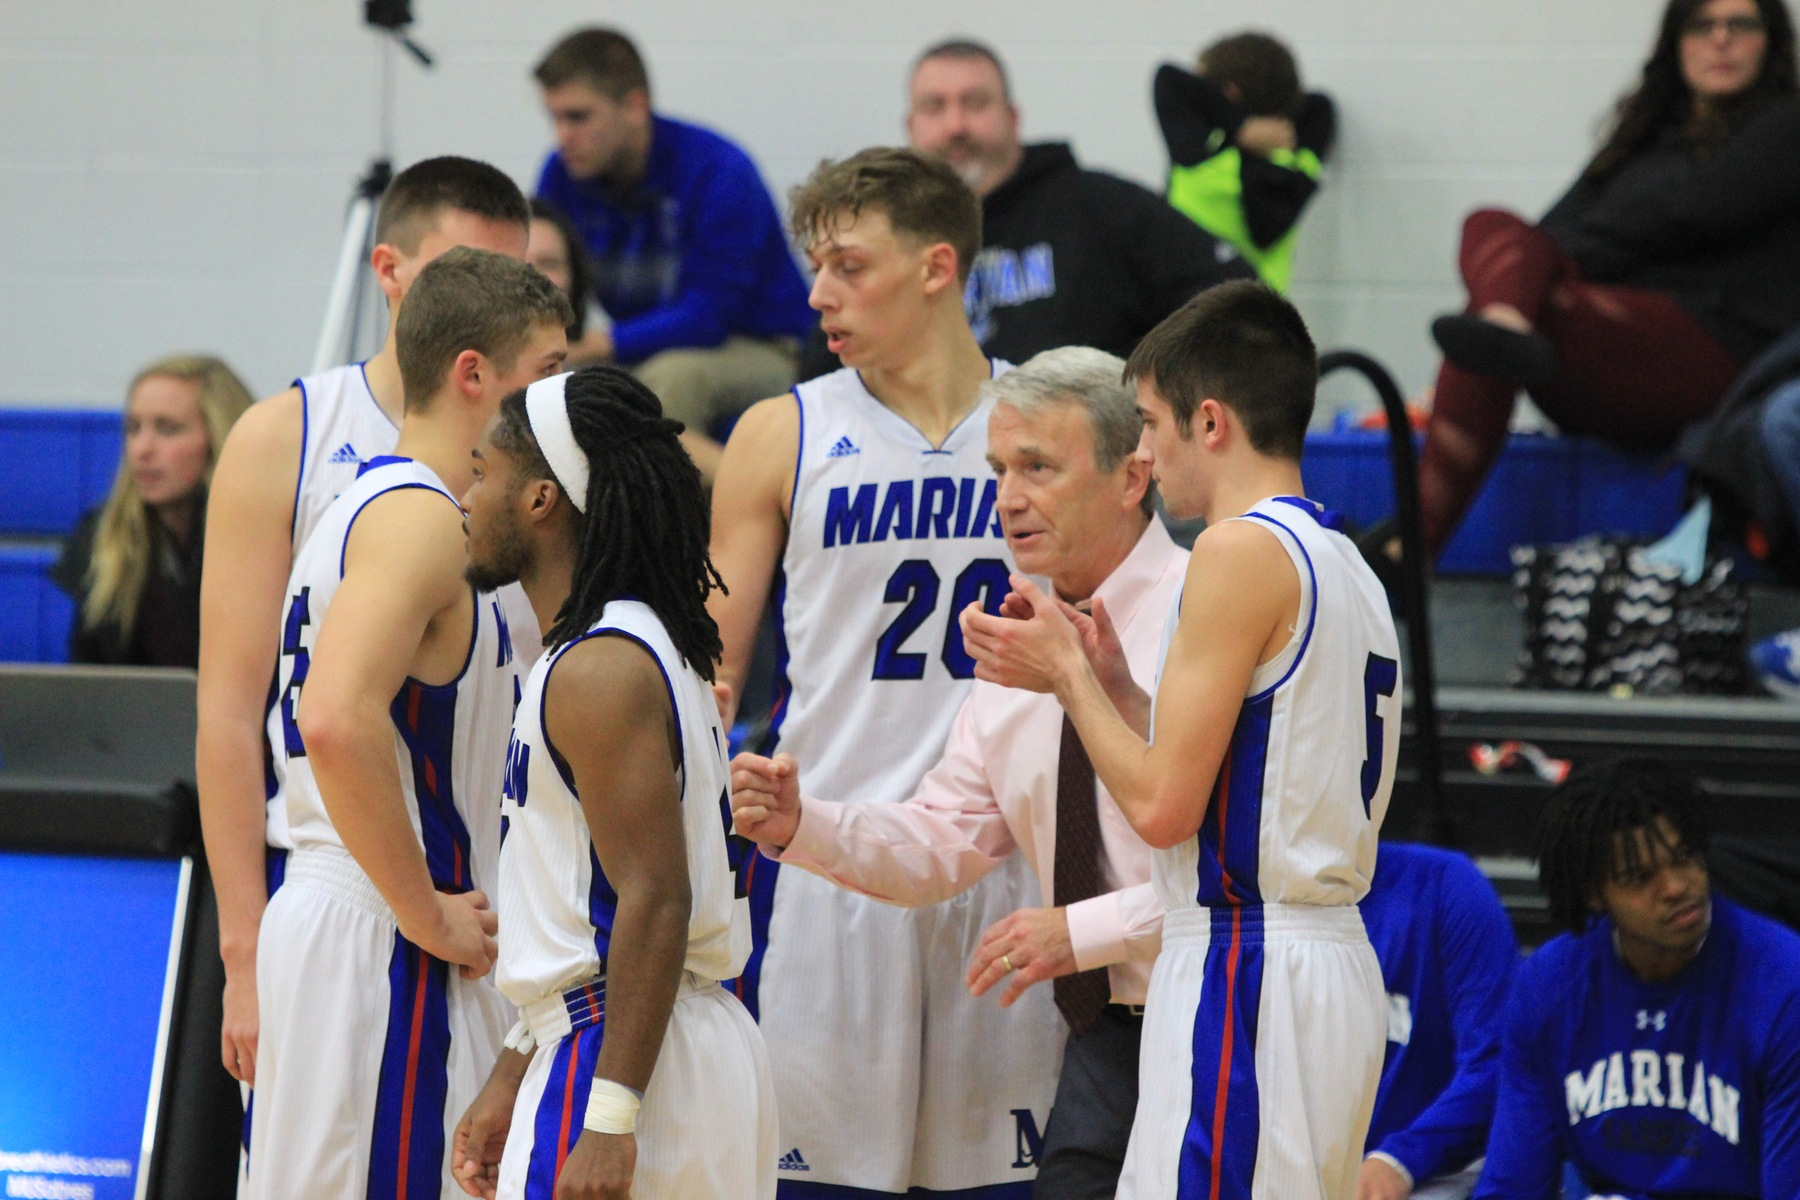 Coach Boyle talks to his players during a timeout.